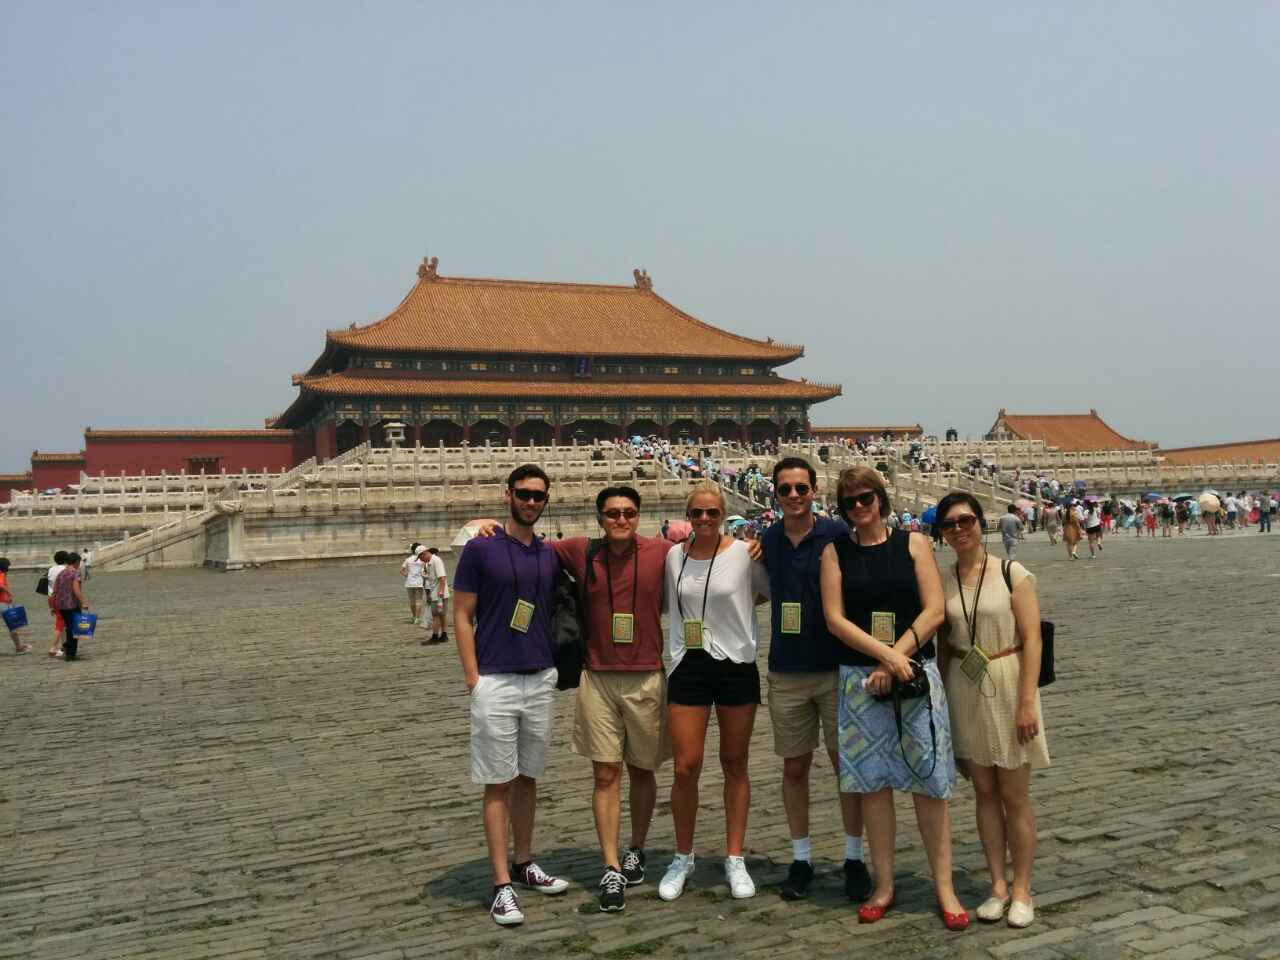 The Summer '15Teaching Fellows! Our first outing together at the Forbidden City.